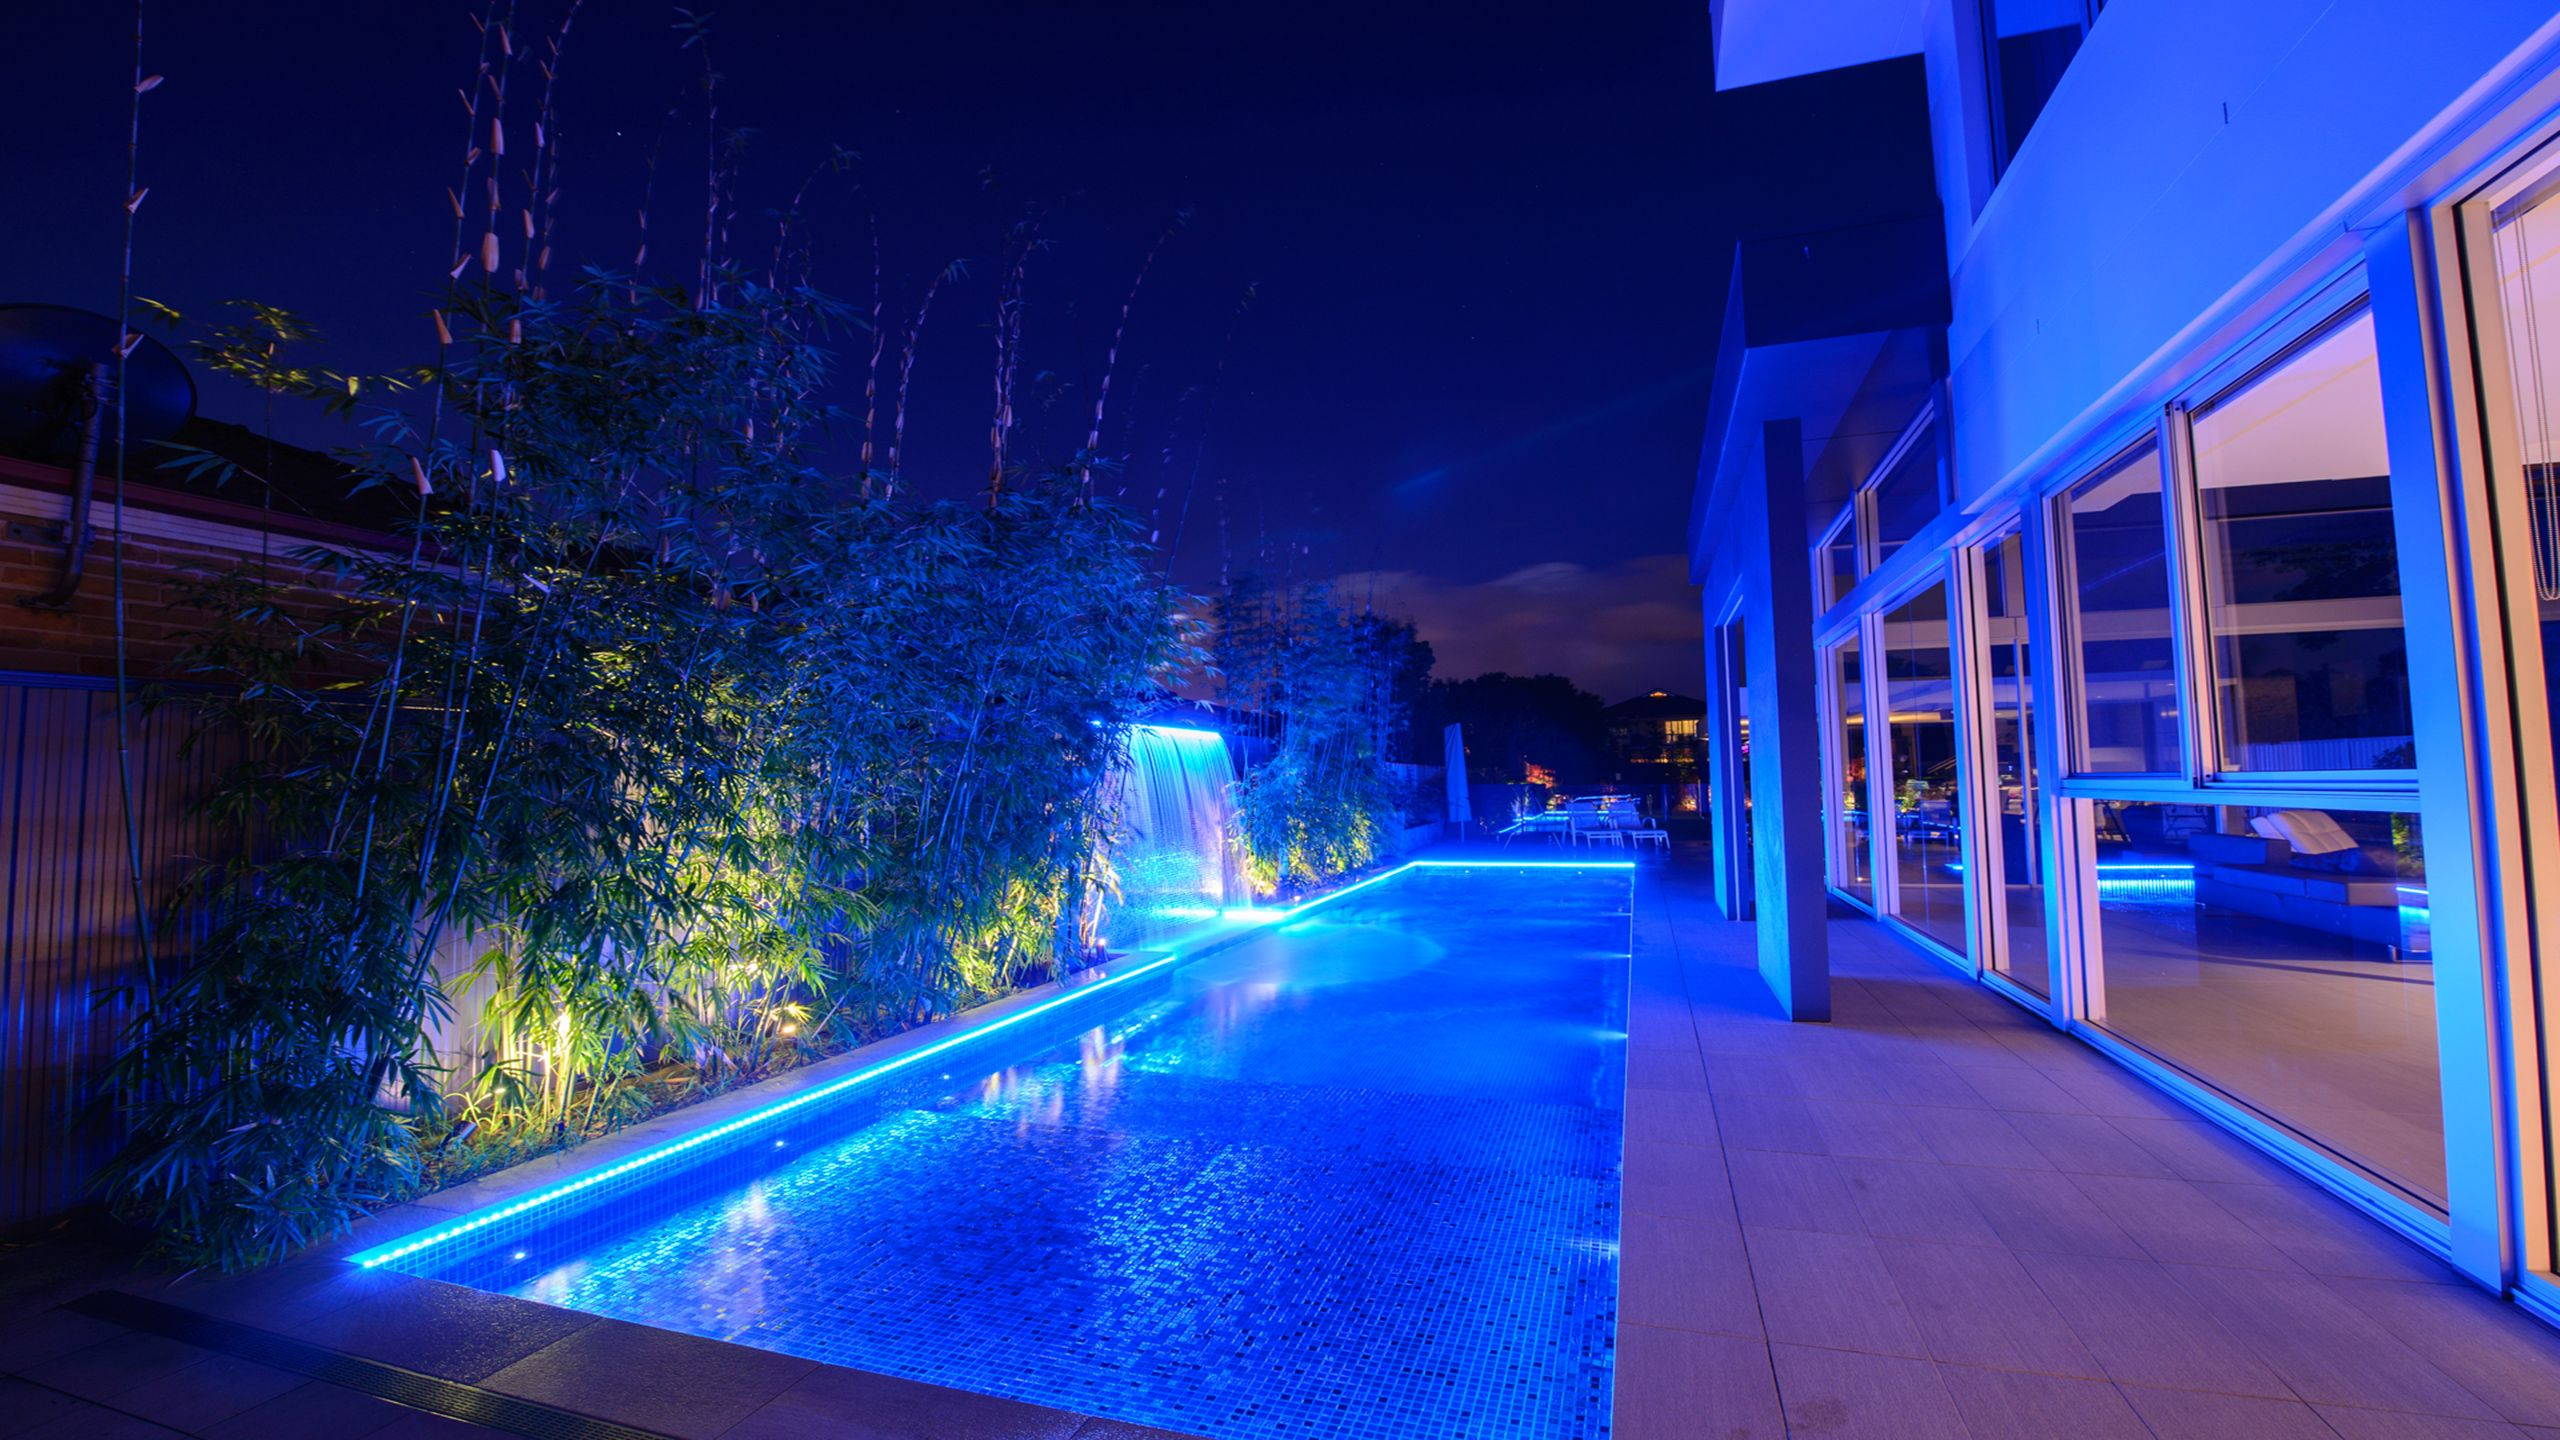 led pool light bulbs are more efficient than incandescent bulbs, saving energy and money. Led Perimeter Strip Lighting Pool Light Swimming Pool Lights Swimming Pools